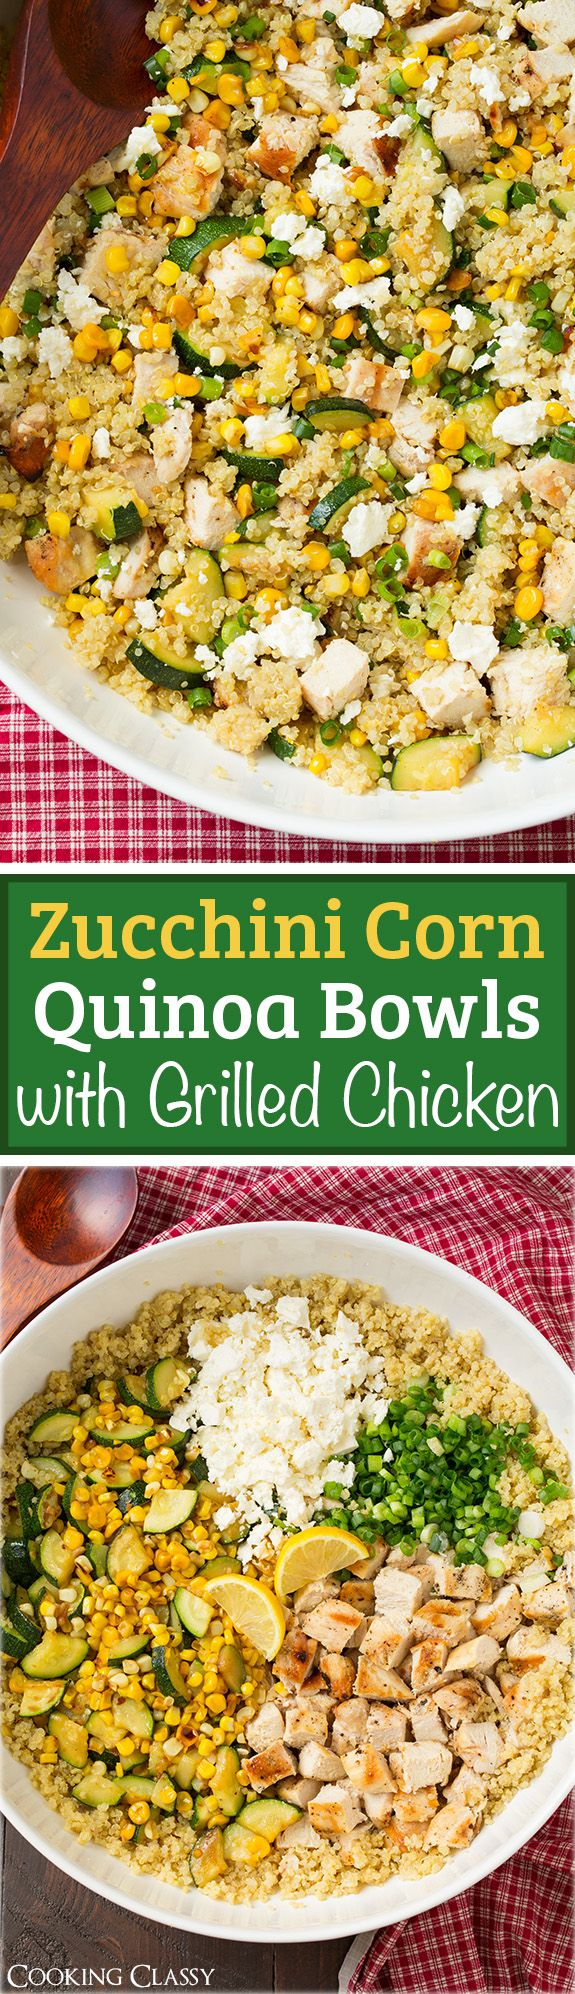 Zucchini Corn And Quinoa Bowls With Grilled Chicken And Lemon